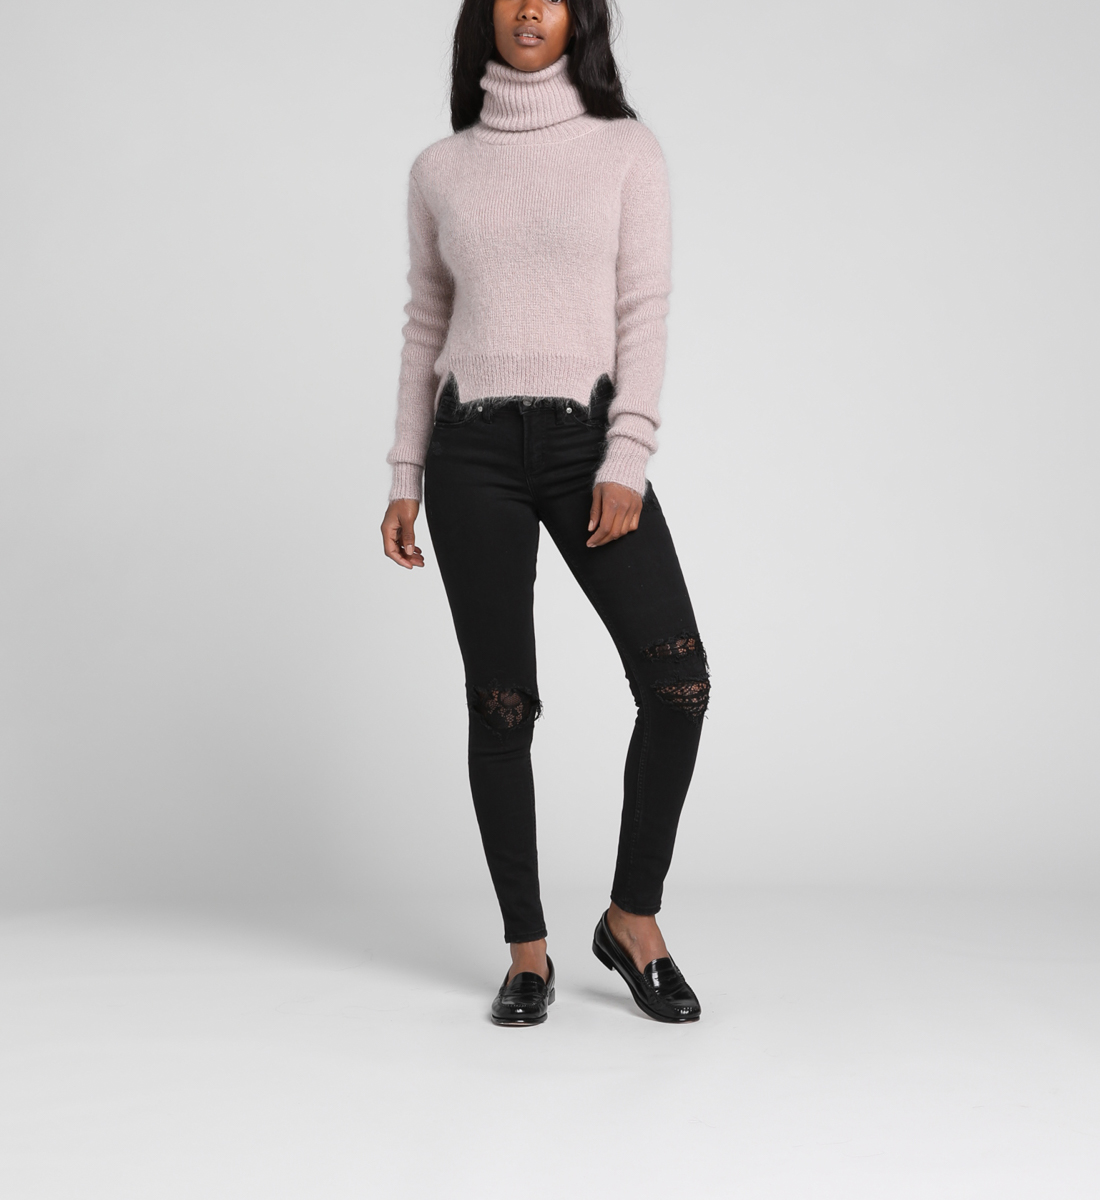 Aiko Mid-Rise Skinny Lace Jeans, , hi-res